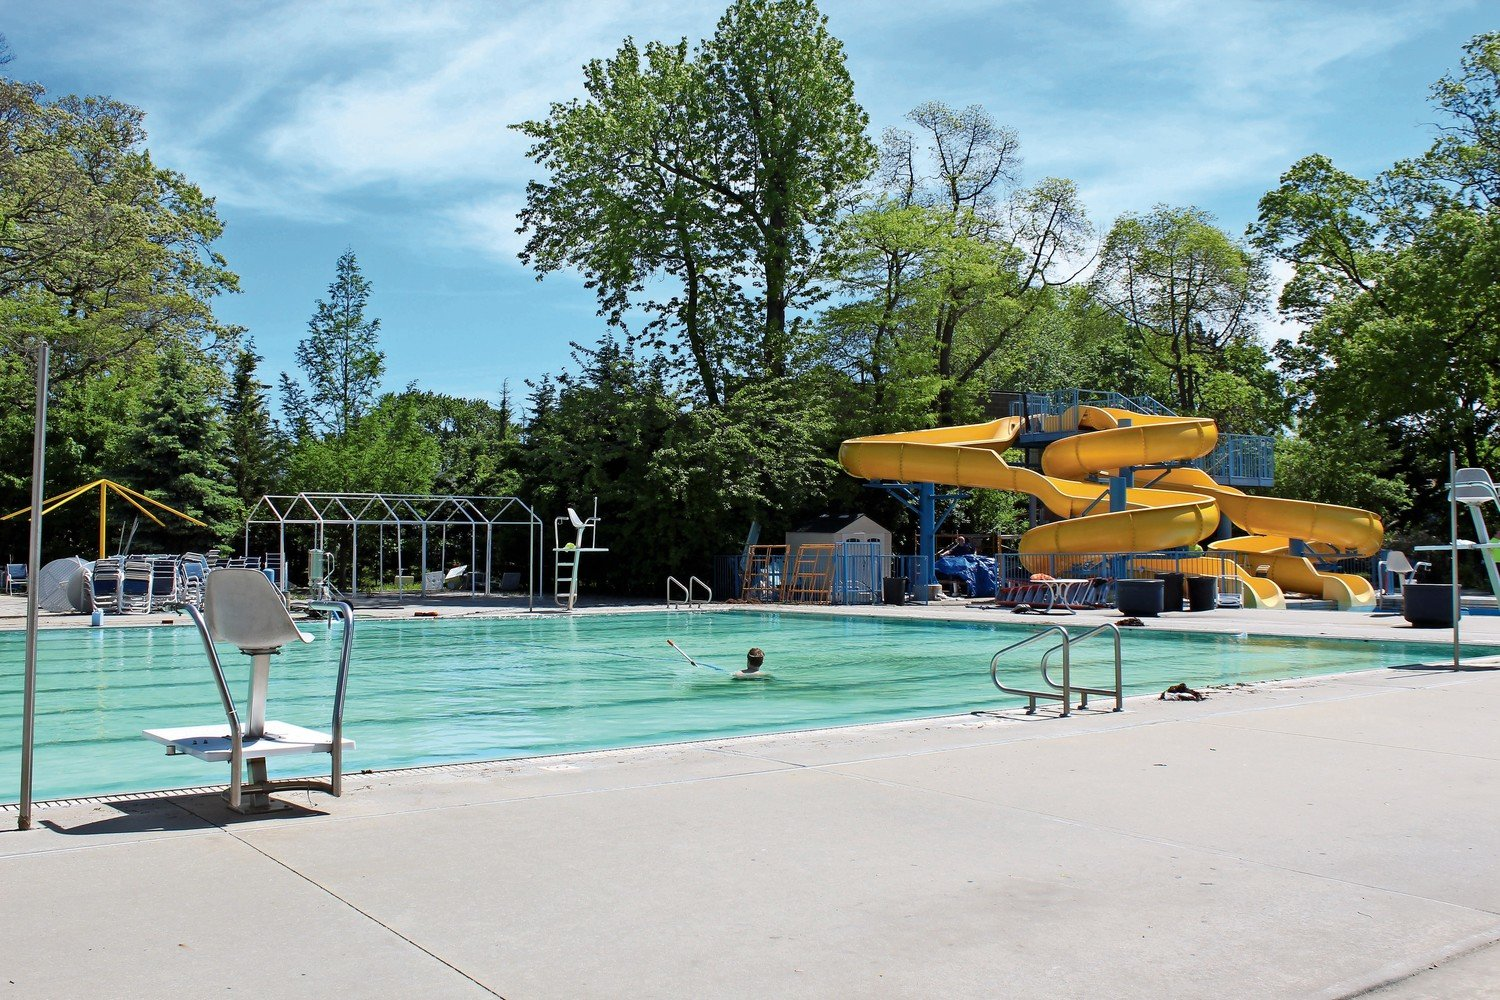 The Lynbrook village board rejected a proposal to raise seasonal rates for the Village Municipal Pool for 2020 by 10 percent across the board, but may increase some admission fees this summer.